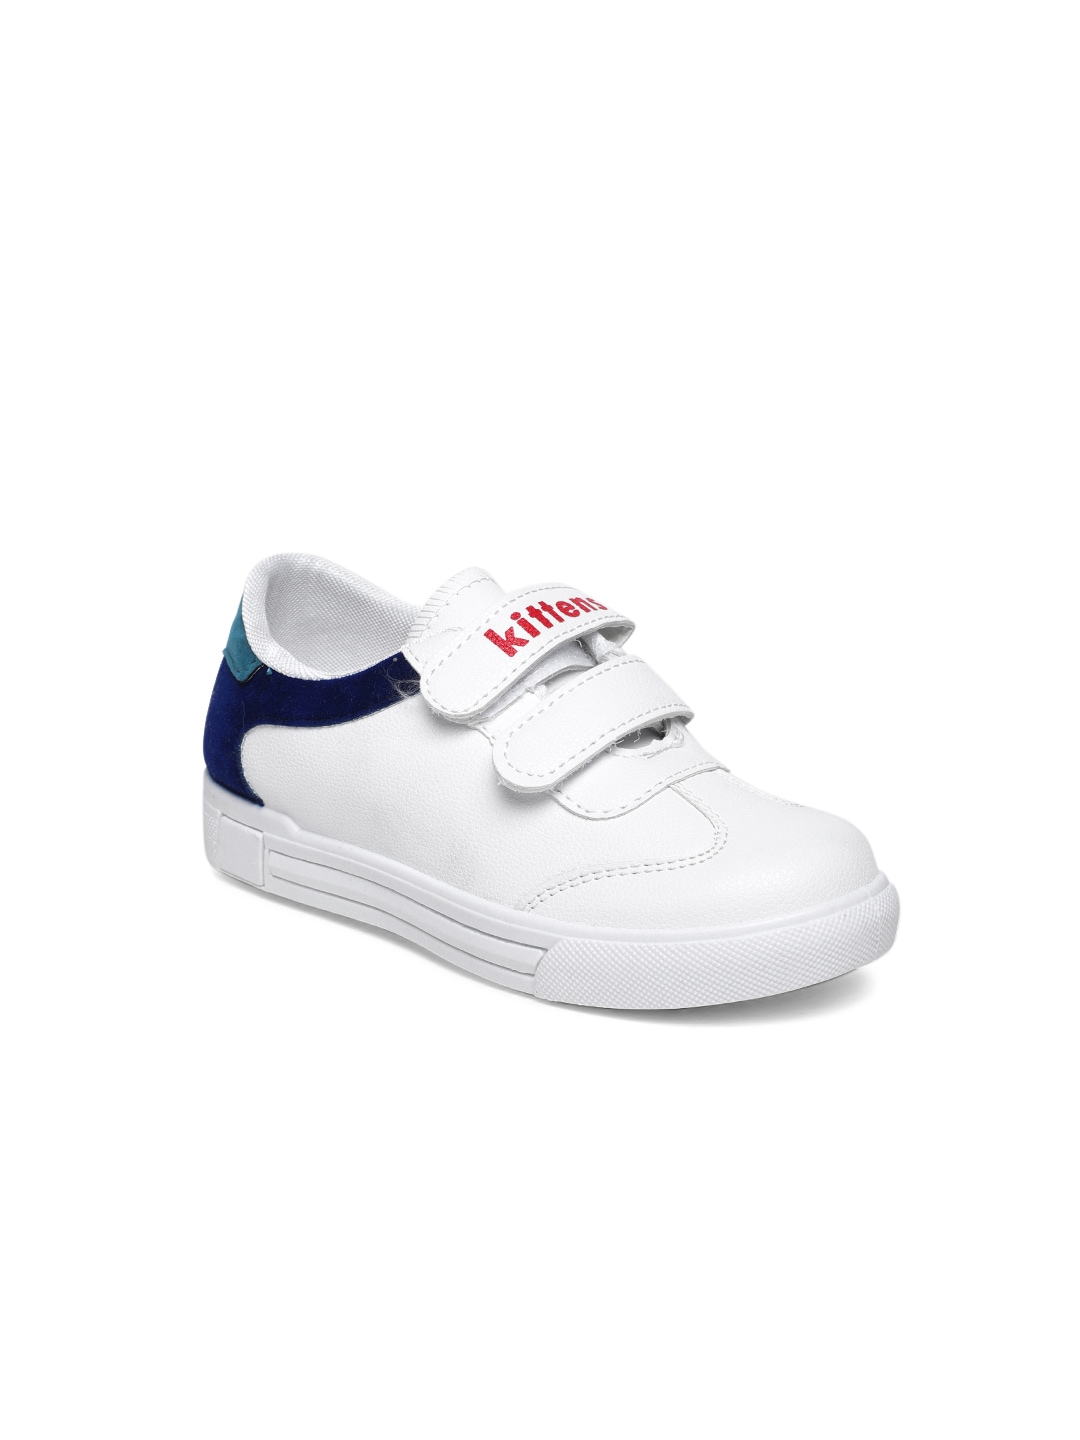 b9014dbc055 Boys Casual Shoes- Buy Casual Shoes for Boys online in India